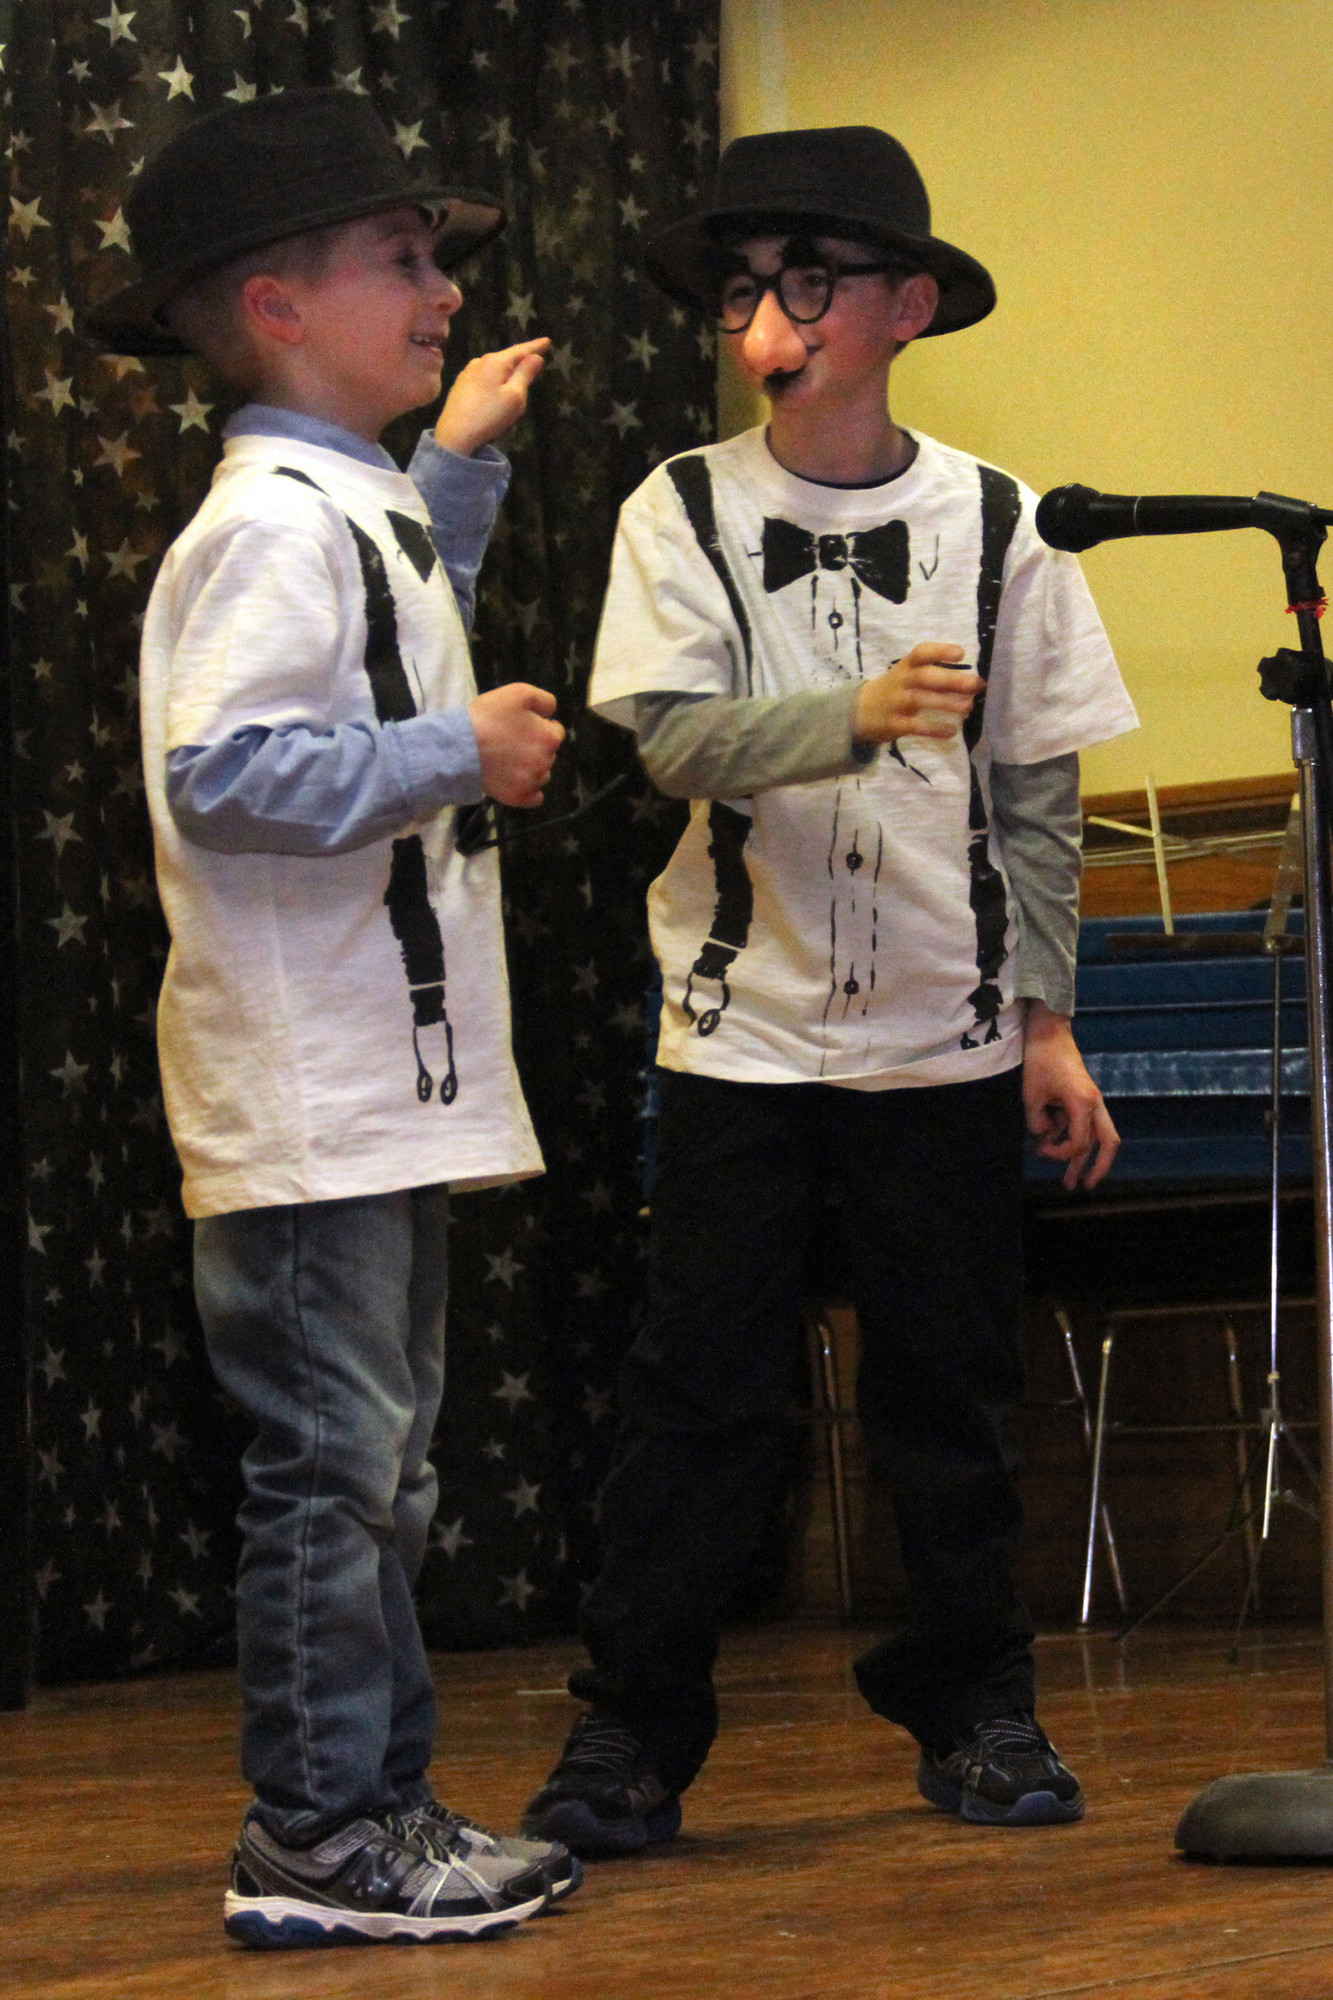 The team of Nicholas Prizzi and Jack Osborne perform a comedy skit.